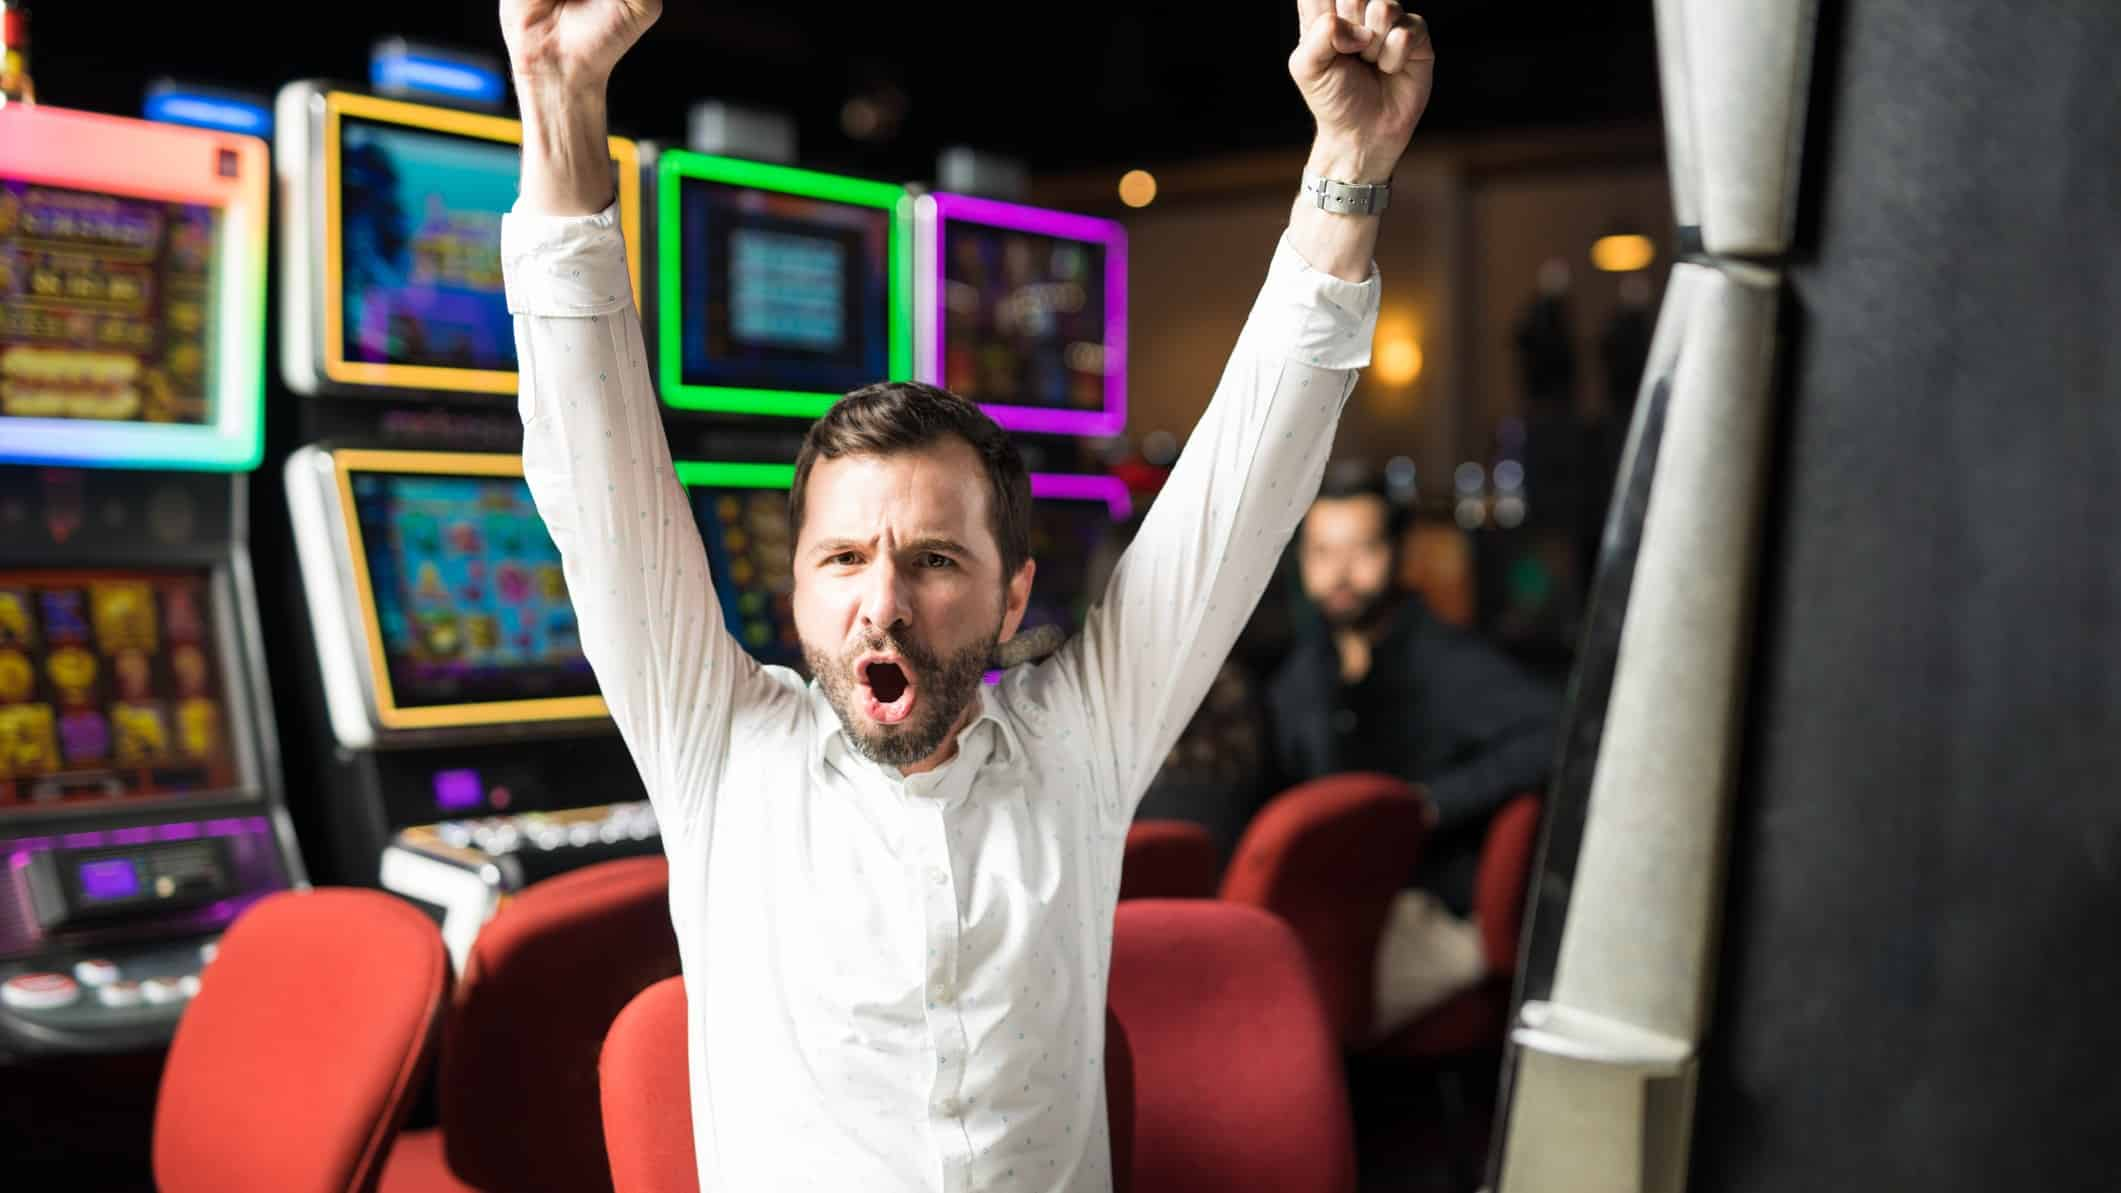 asx gaming share price rice represented by man playing pokies and celebrating a win